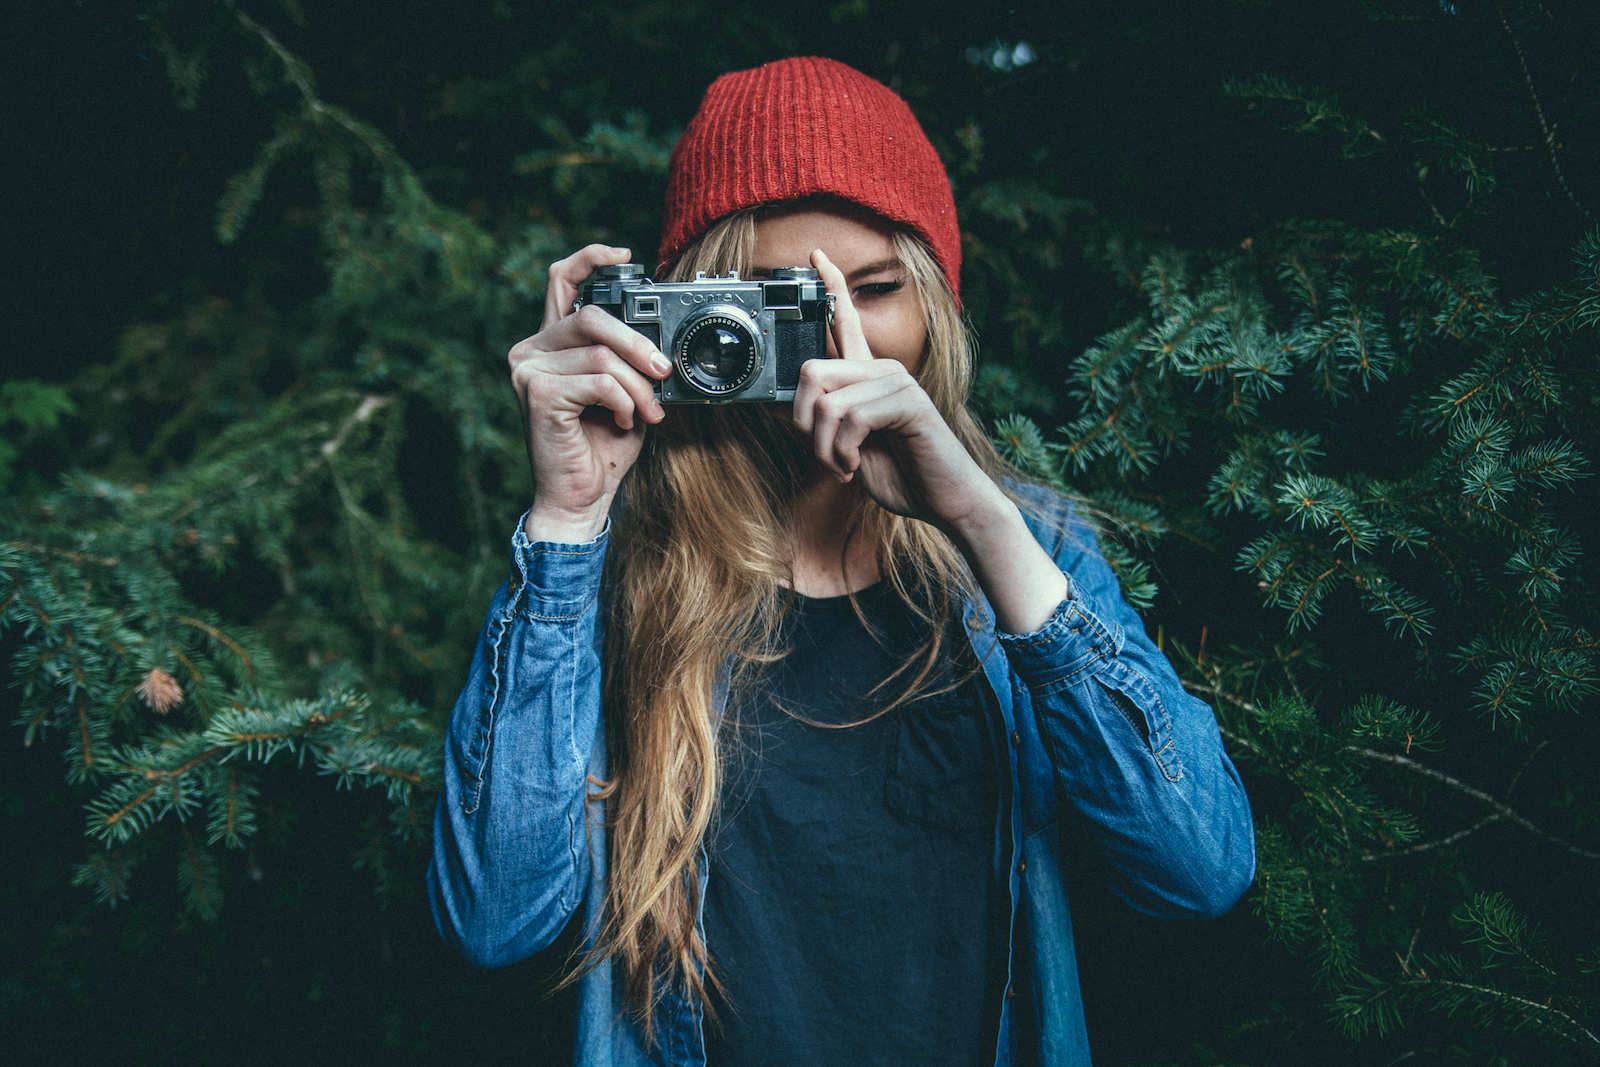 Photography tips from Collage.com